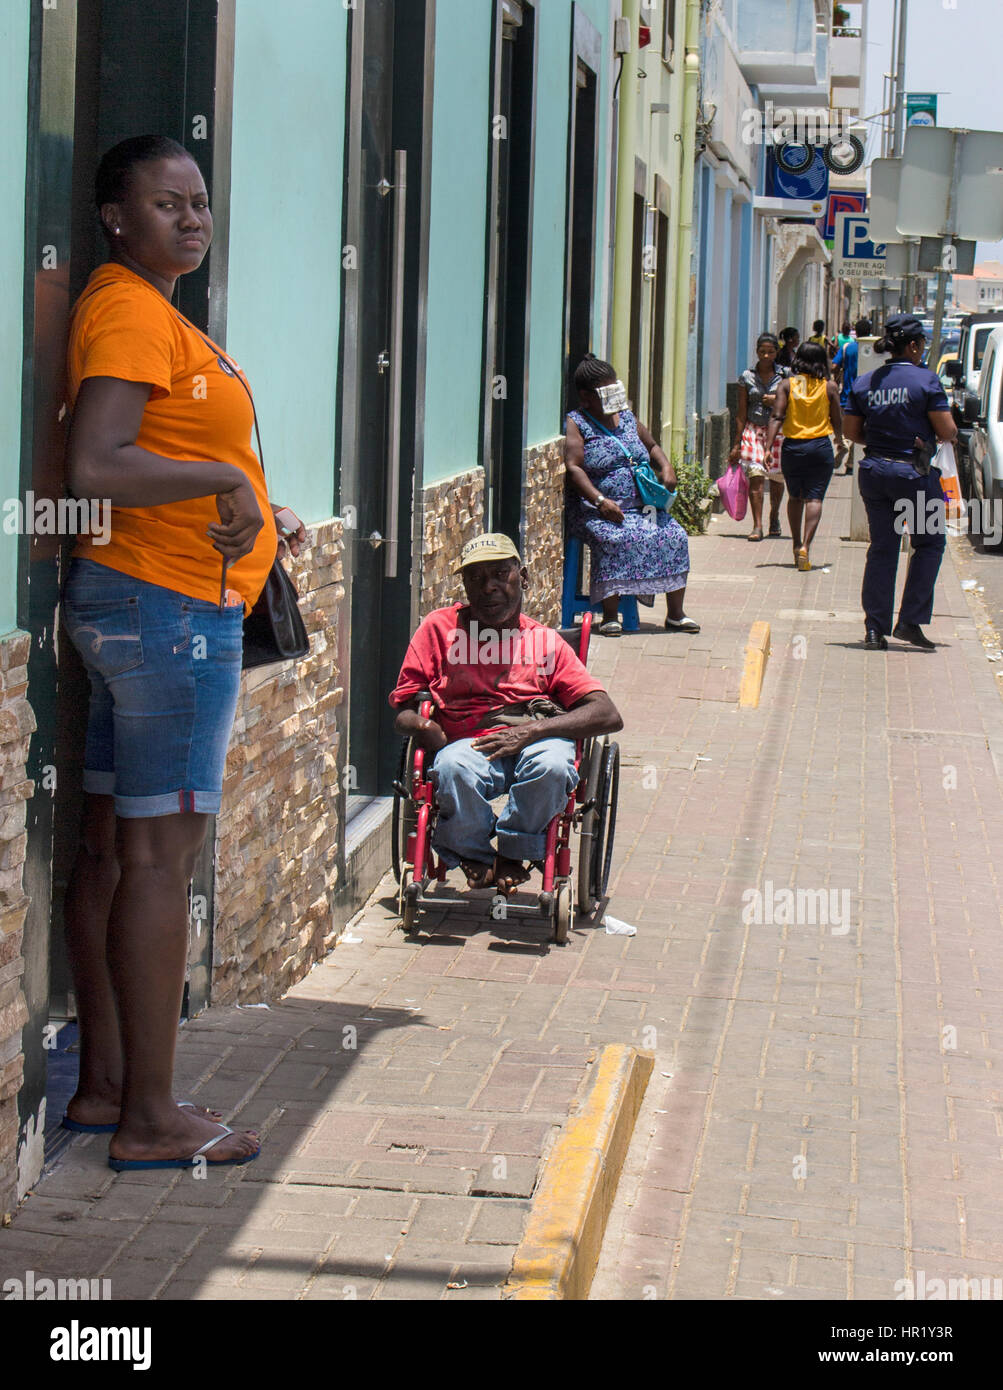 People begging for money on the street in Cape Verde - Stock Image